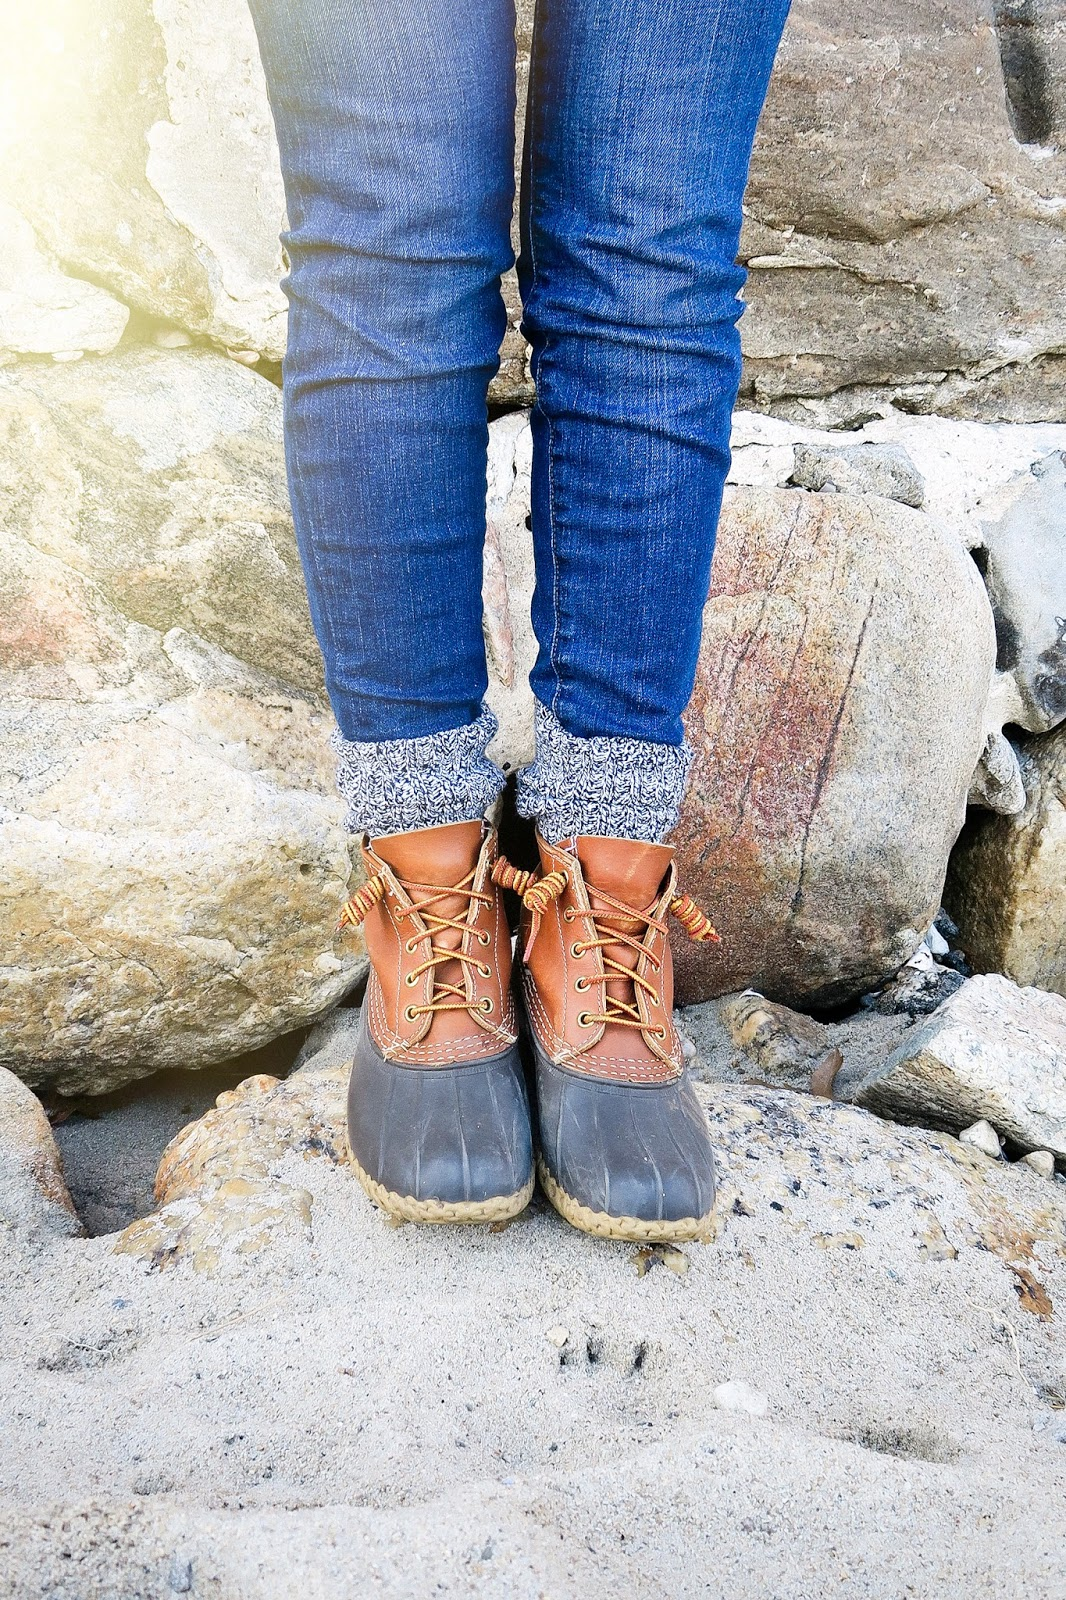 mens boots style 2016 photo - 1